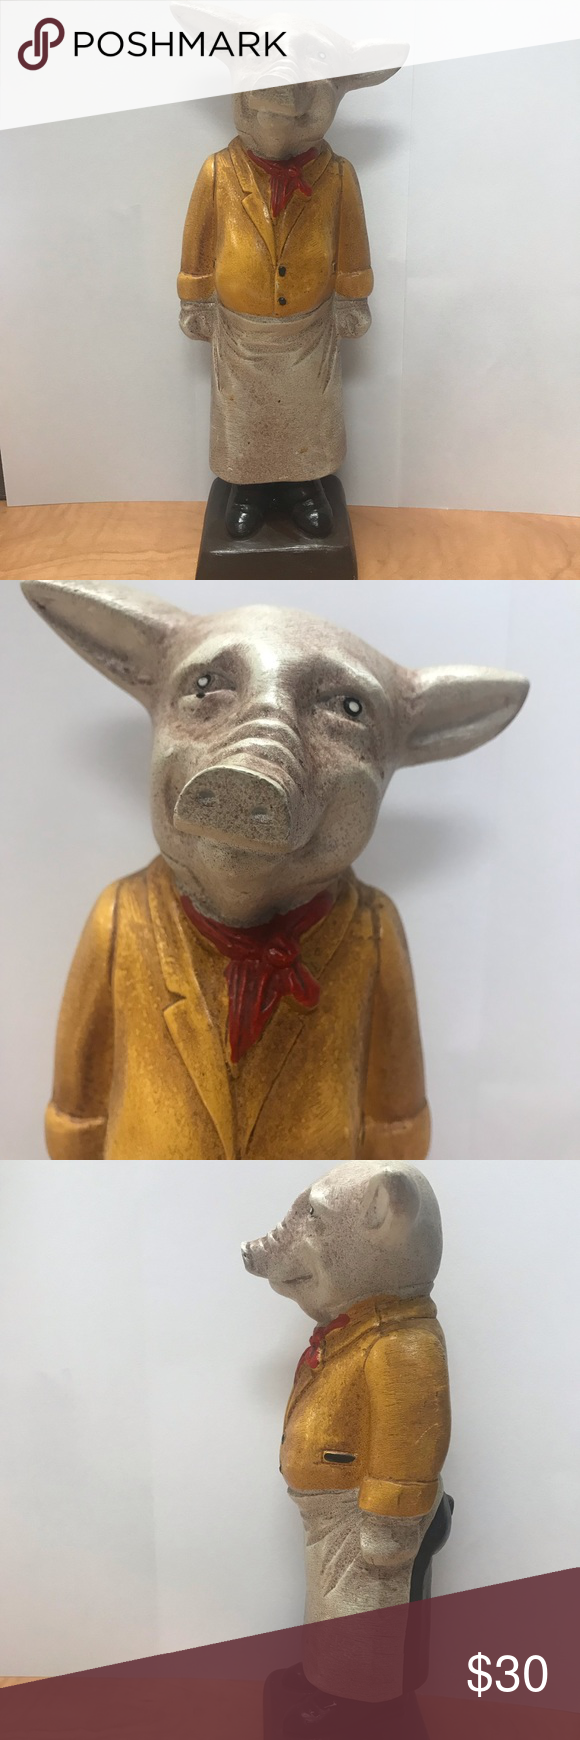 """10"""" PIG IN APRON Knick Knack/Collectible Hey all you animal lovers, check out this cute little guy. 10 inches high, 2 lbs in weight.  Adorable for home or restaurant decor. Make me an offer... Accents Decor #knickknack"""